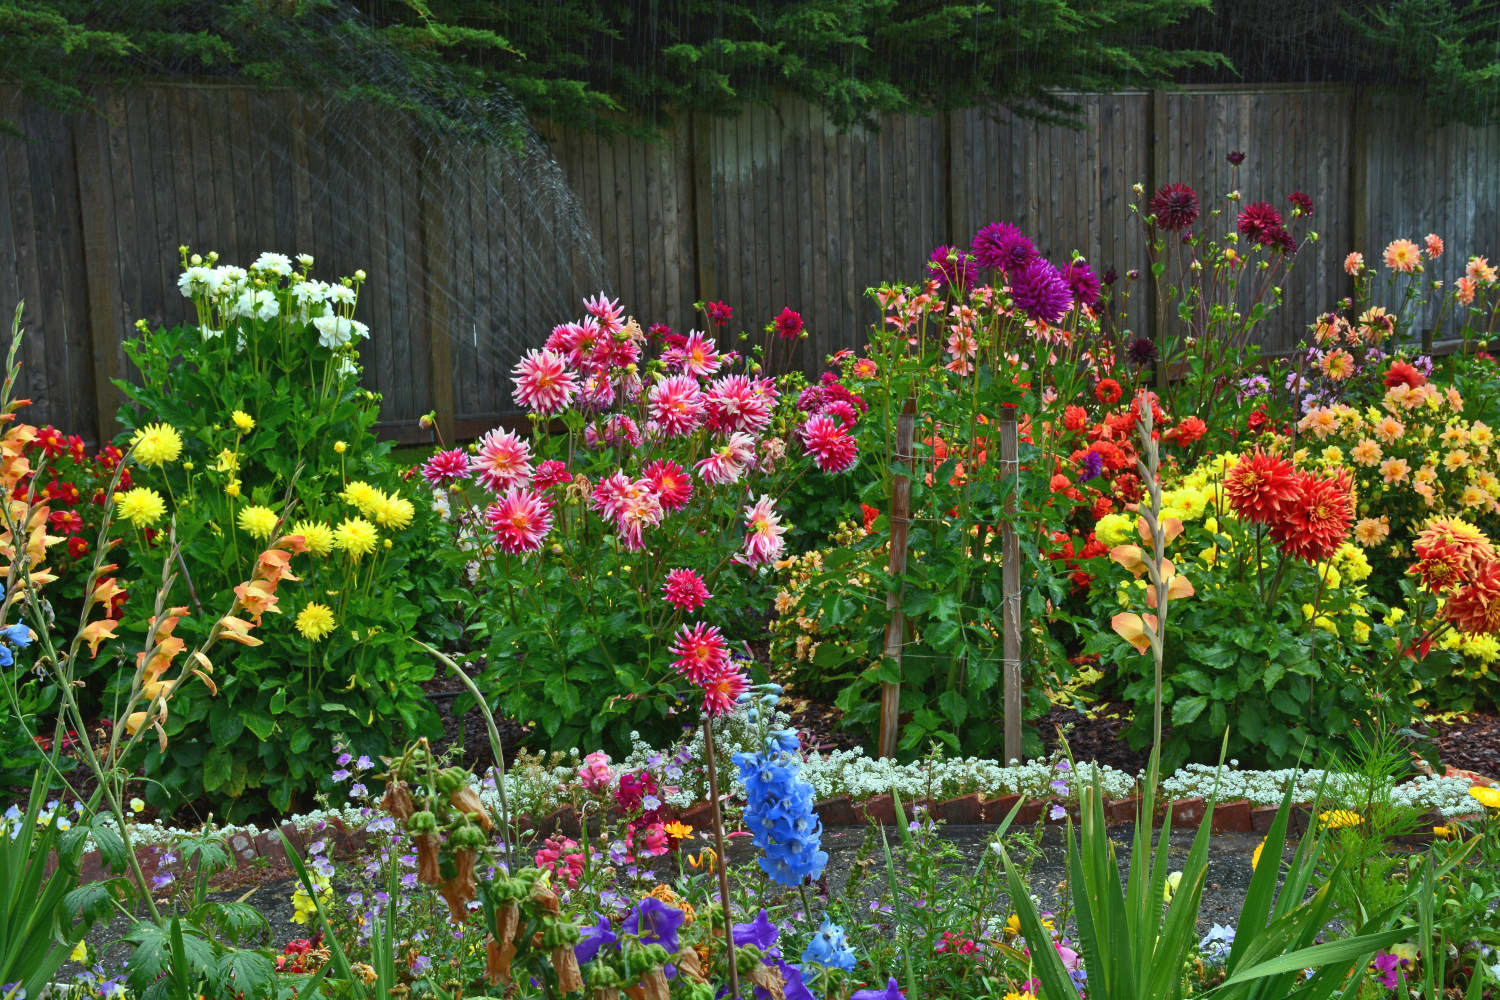 6 Things to Plant in April, from Colorful Perennials to Tasty Veggies